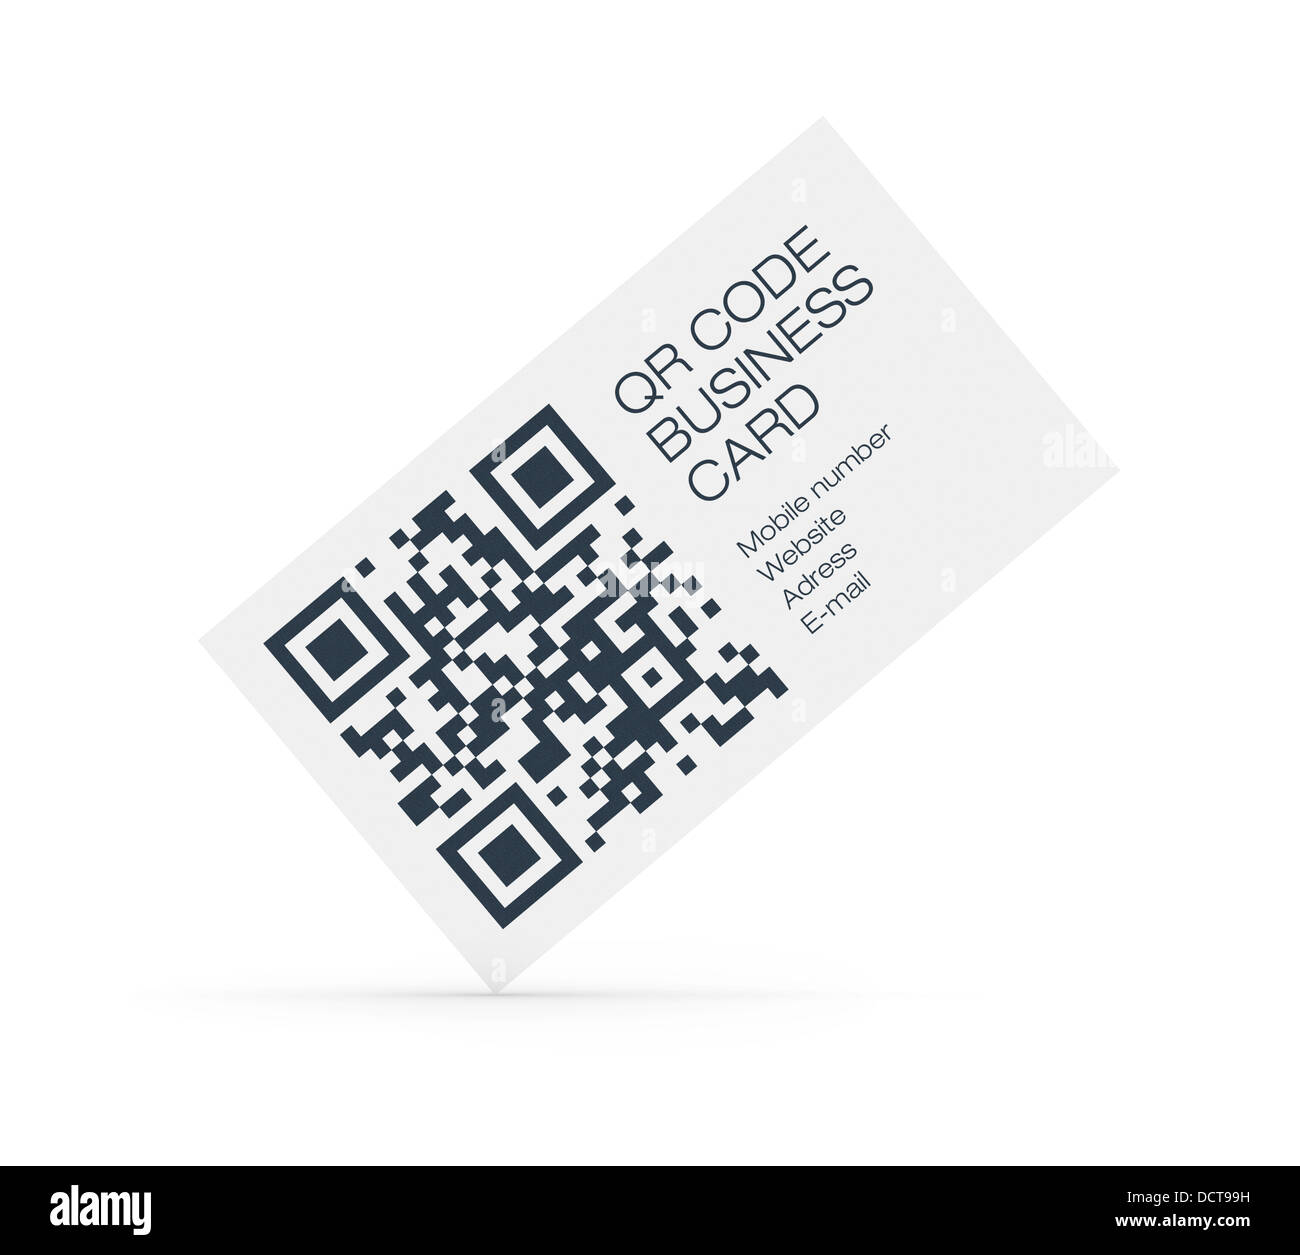 QR-Code business card concept Stock Photo: 59541149 - Alamy